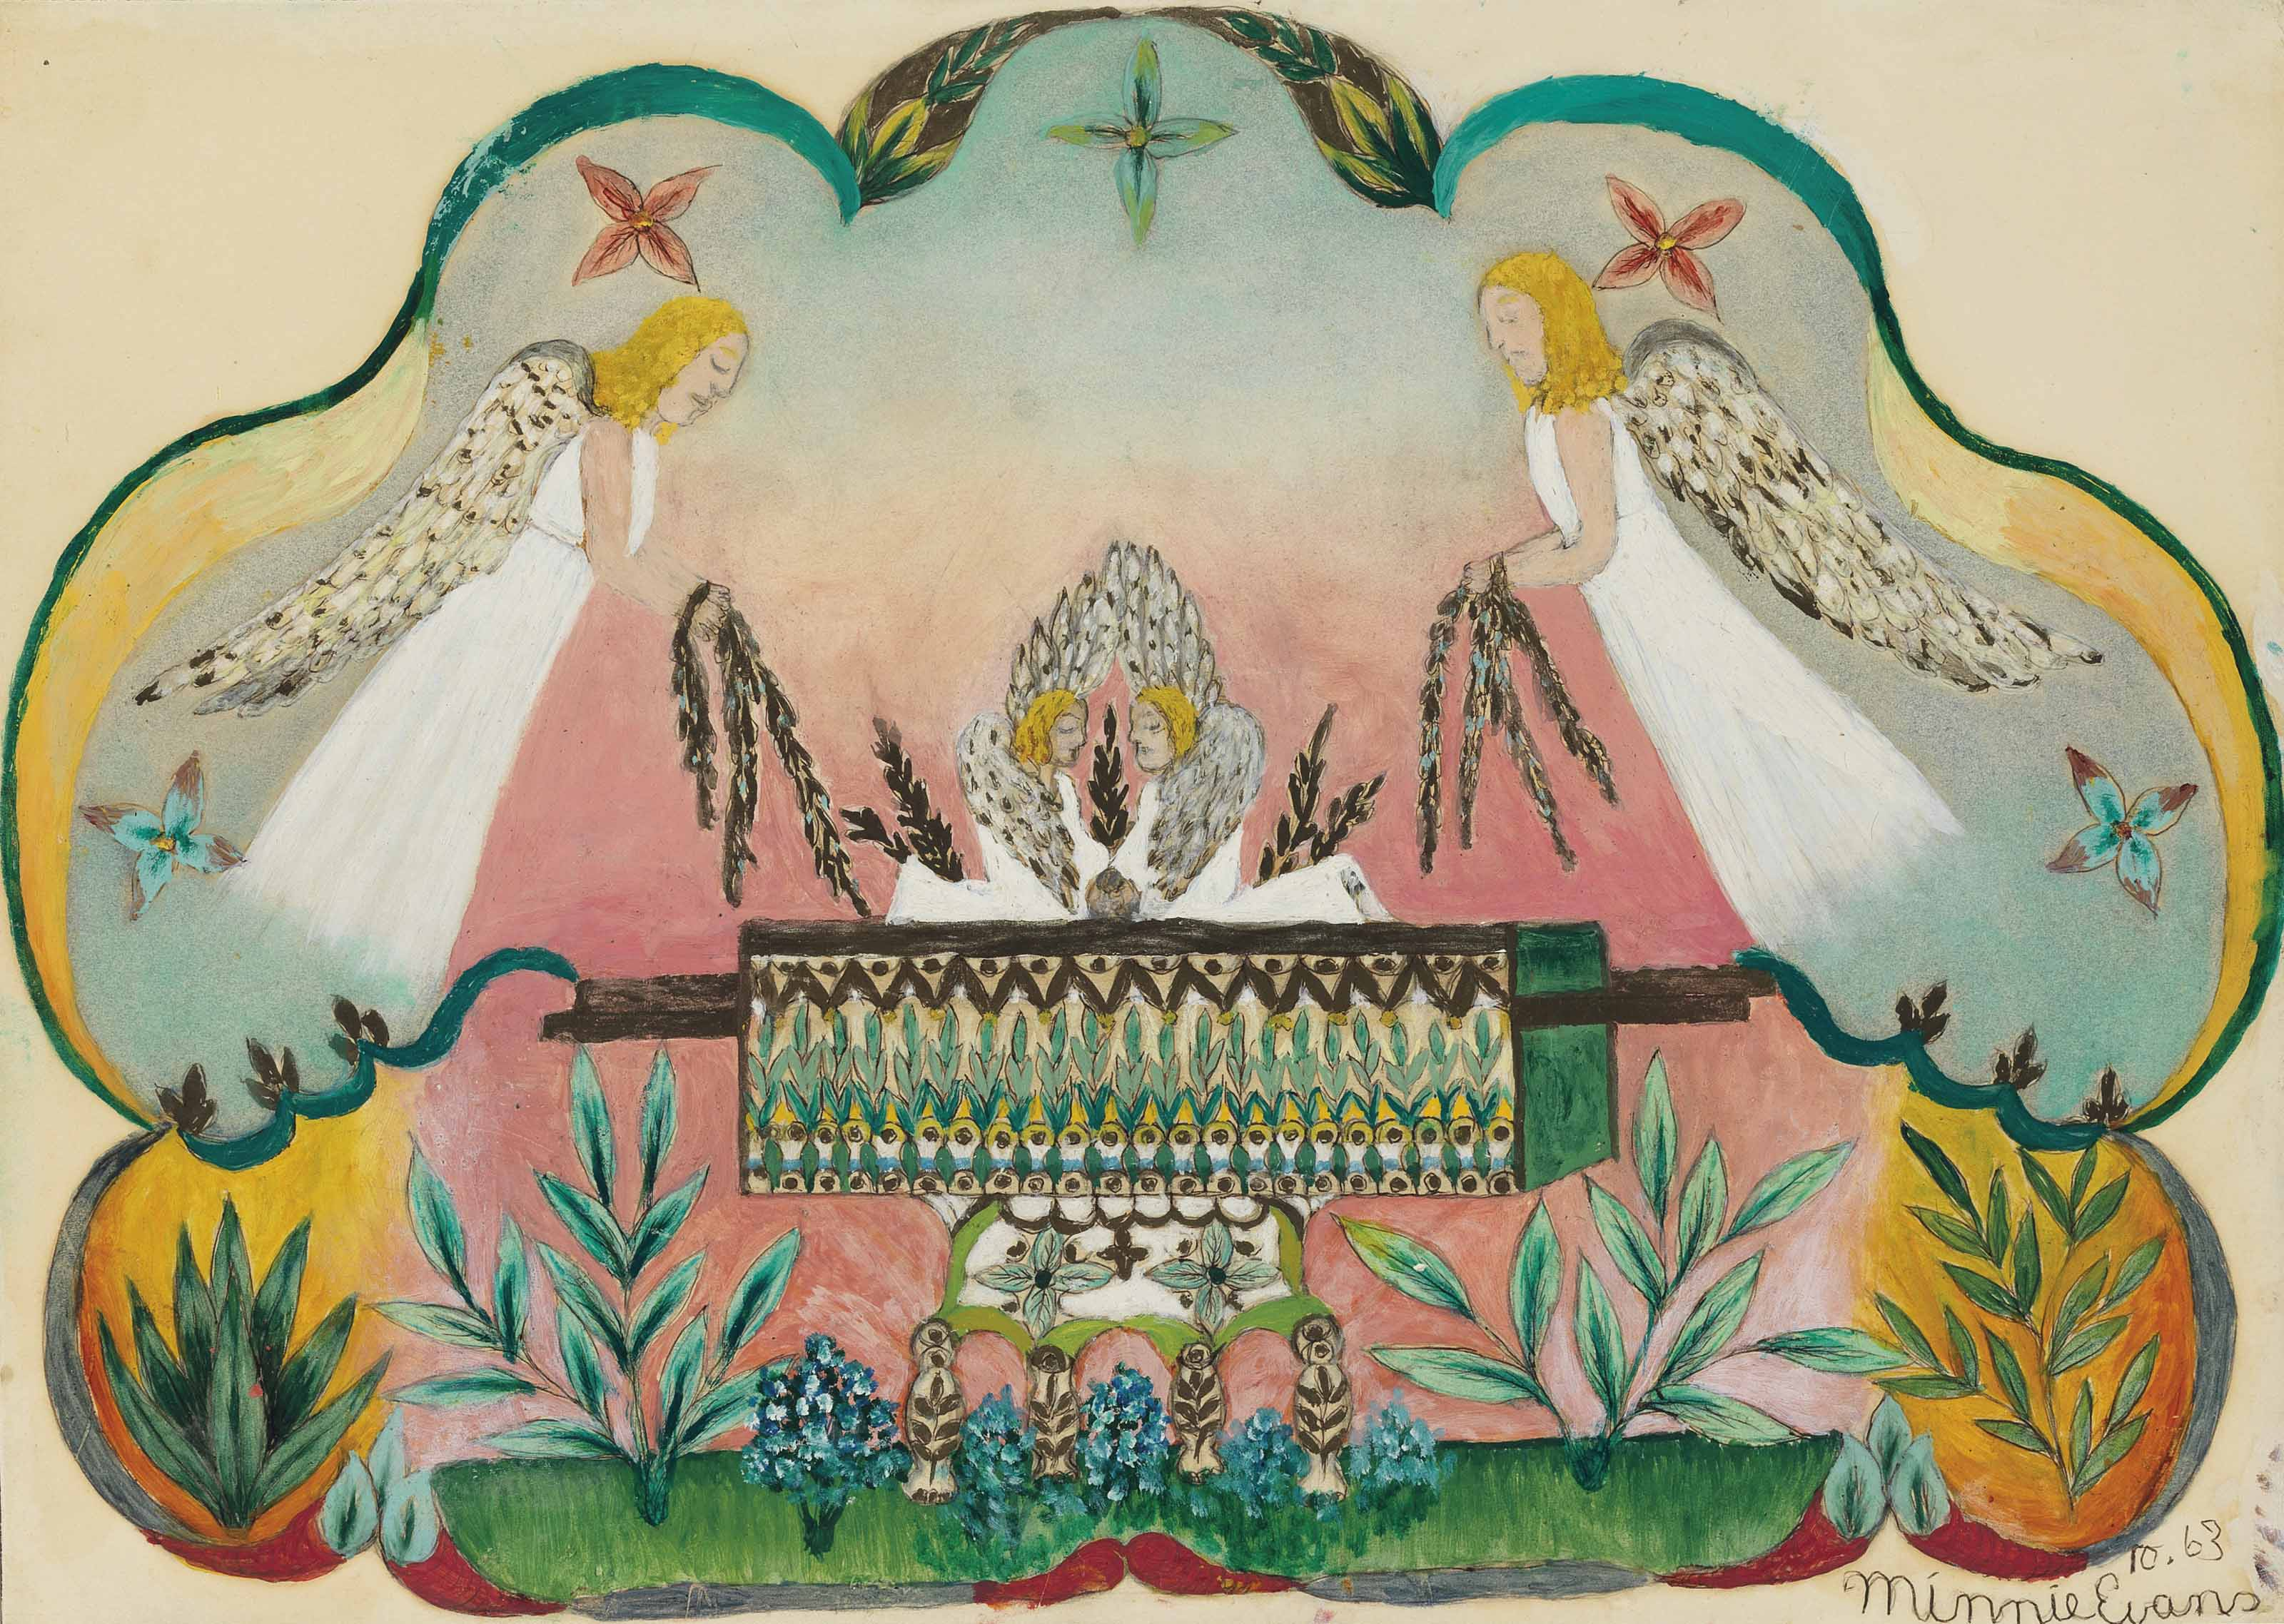 Untitled (Angels Holding the Arc of the Covenant), 1963